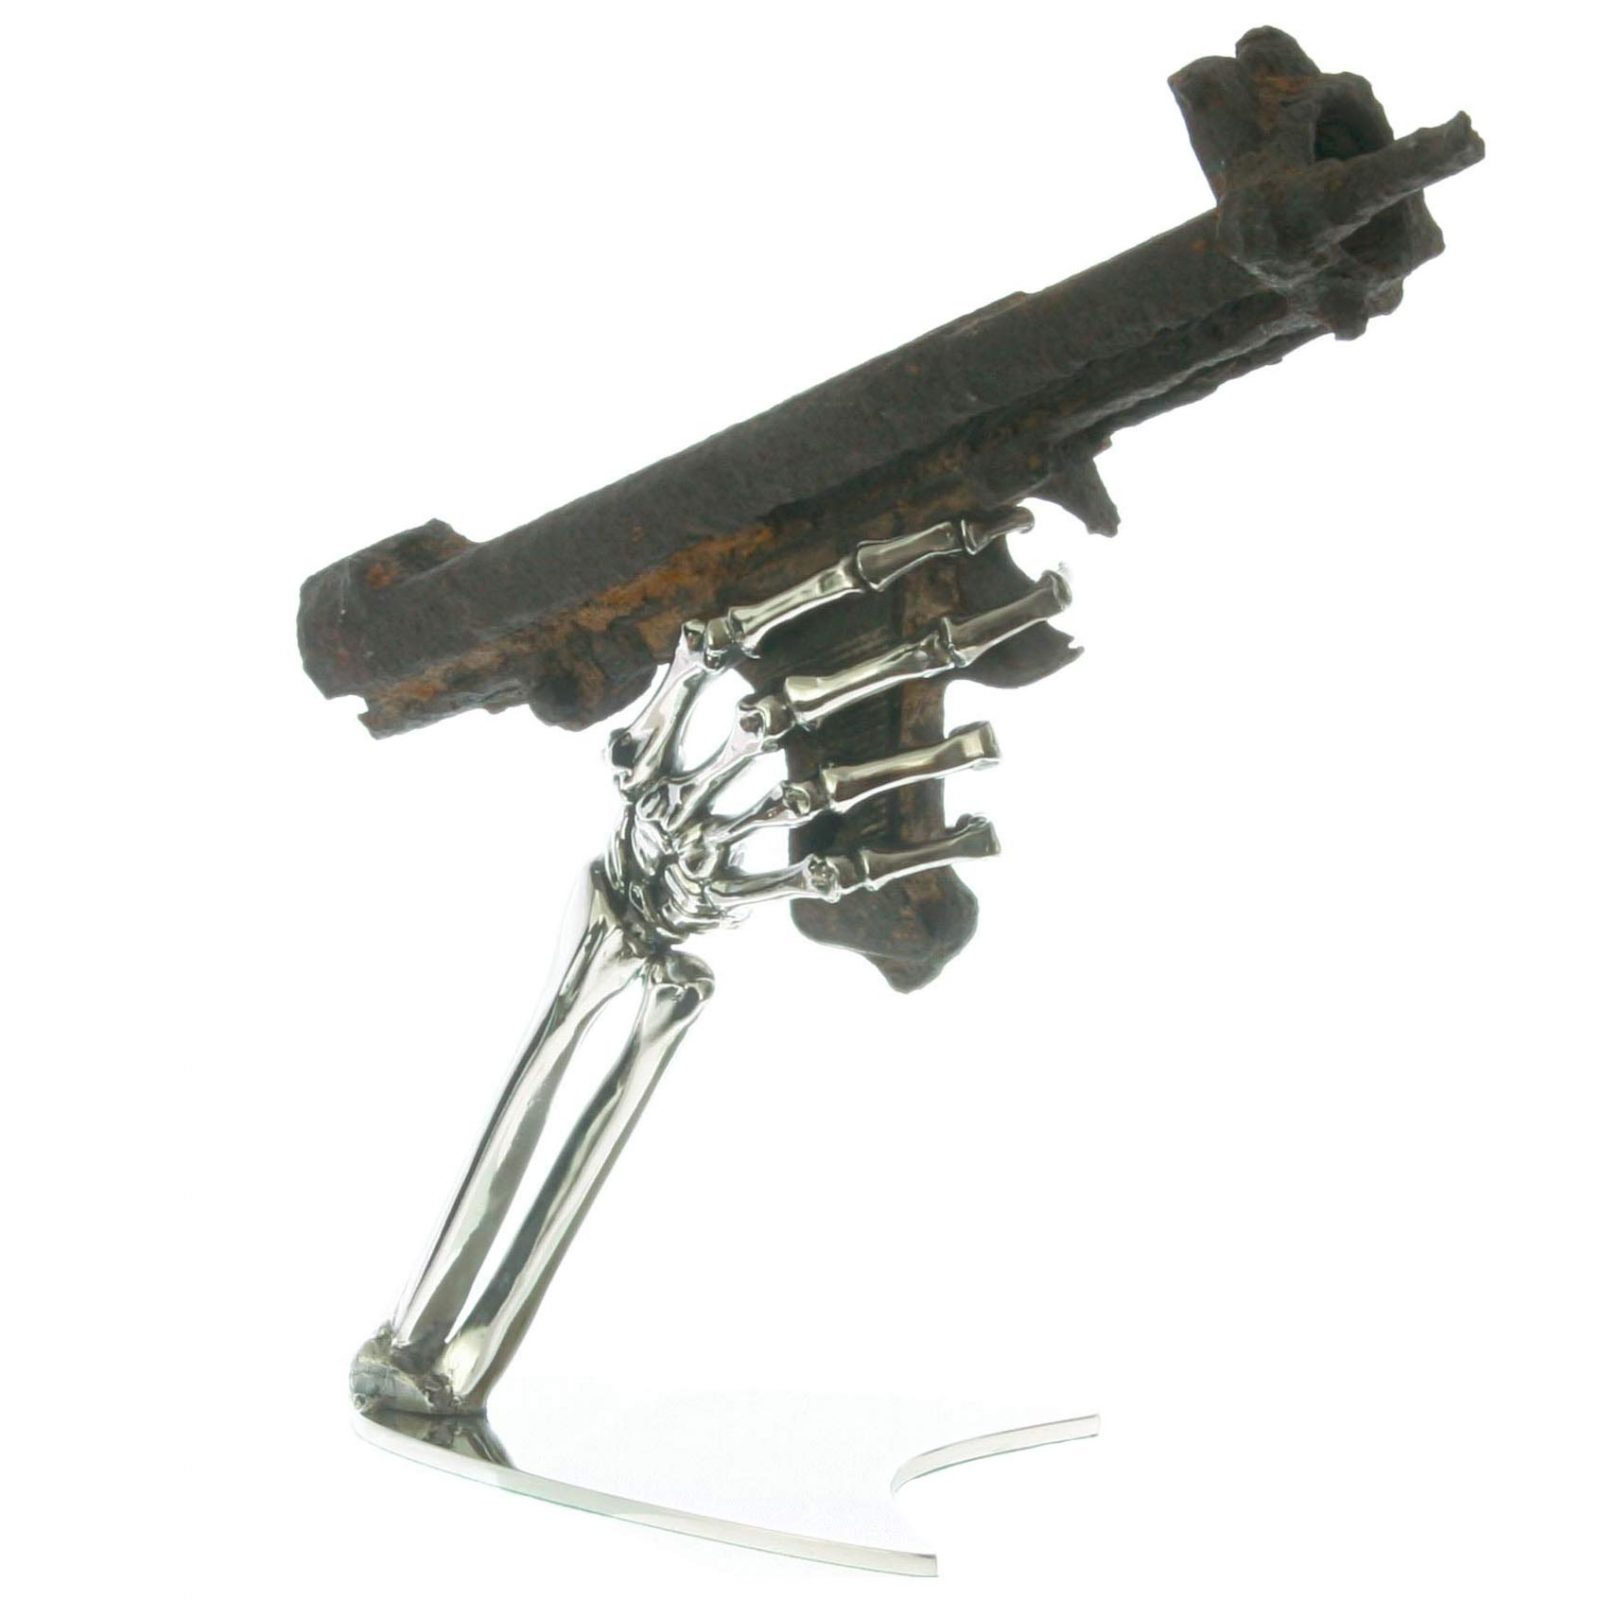 skelton hand gun sculpture with battlefield relic